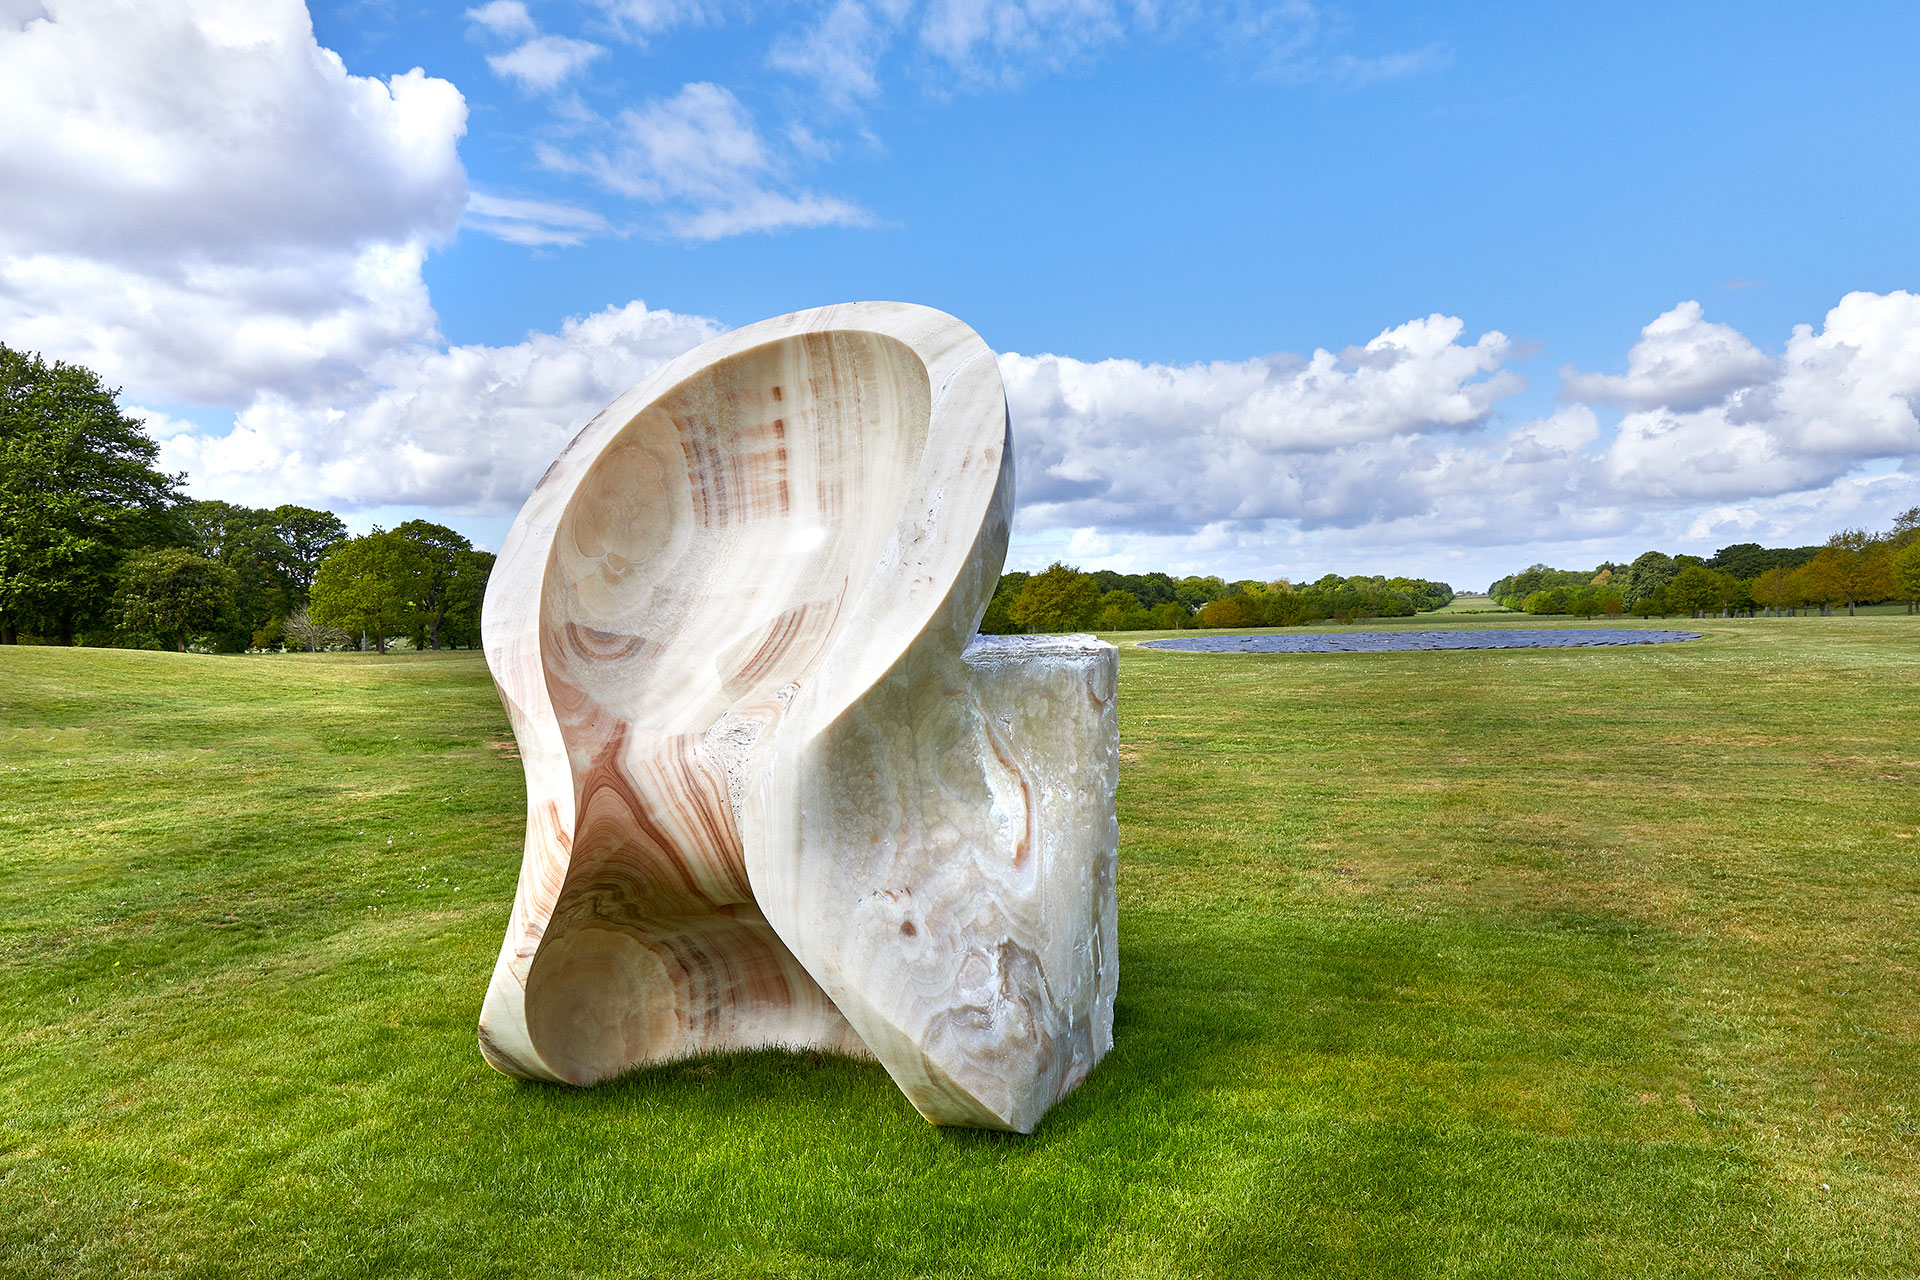 Exhibition view, Anish Kapoor at Houghton Hall. © Anish Kapoor. All rights reserved DACS, 2020. Photo by Pete Huggins. Featured: Eight Eight, 2004, onyx. Courtesy the artist and Lisson Gallery.